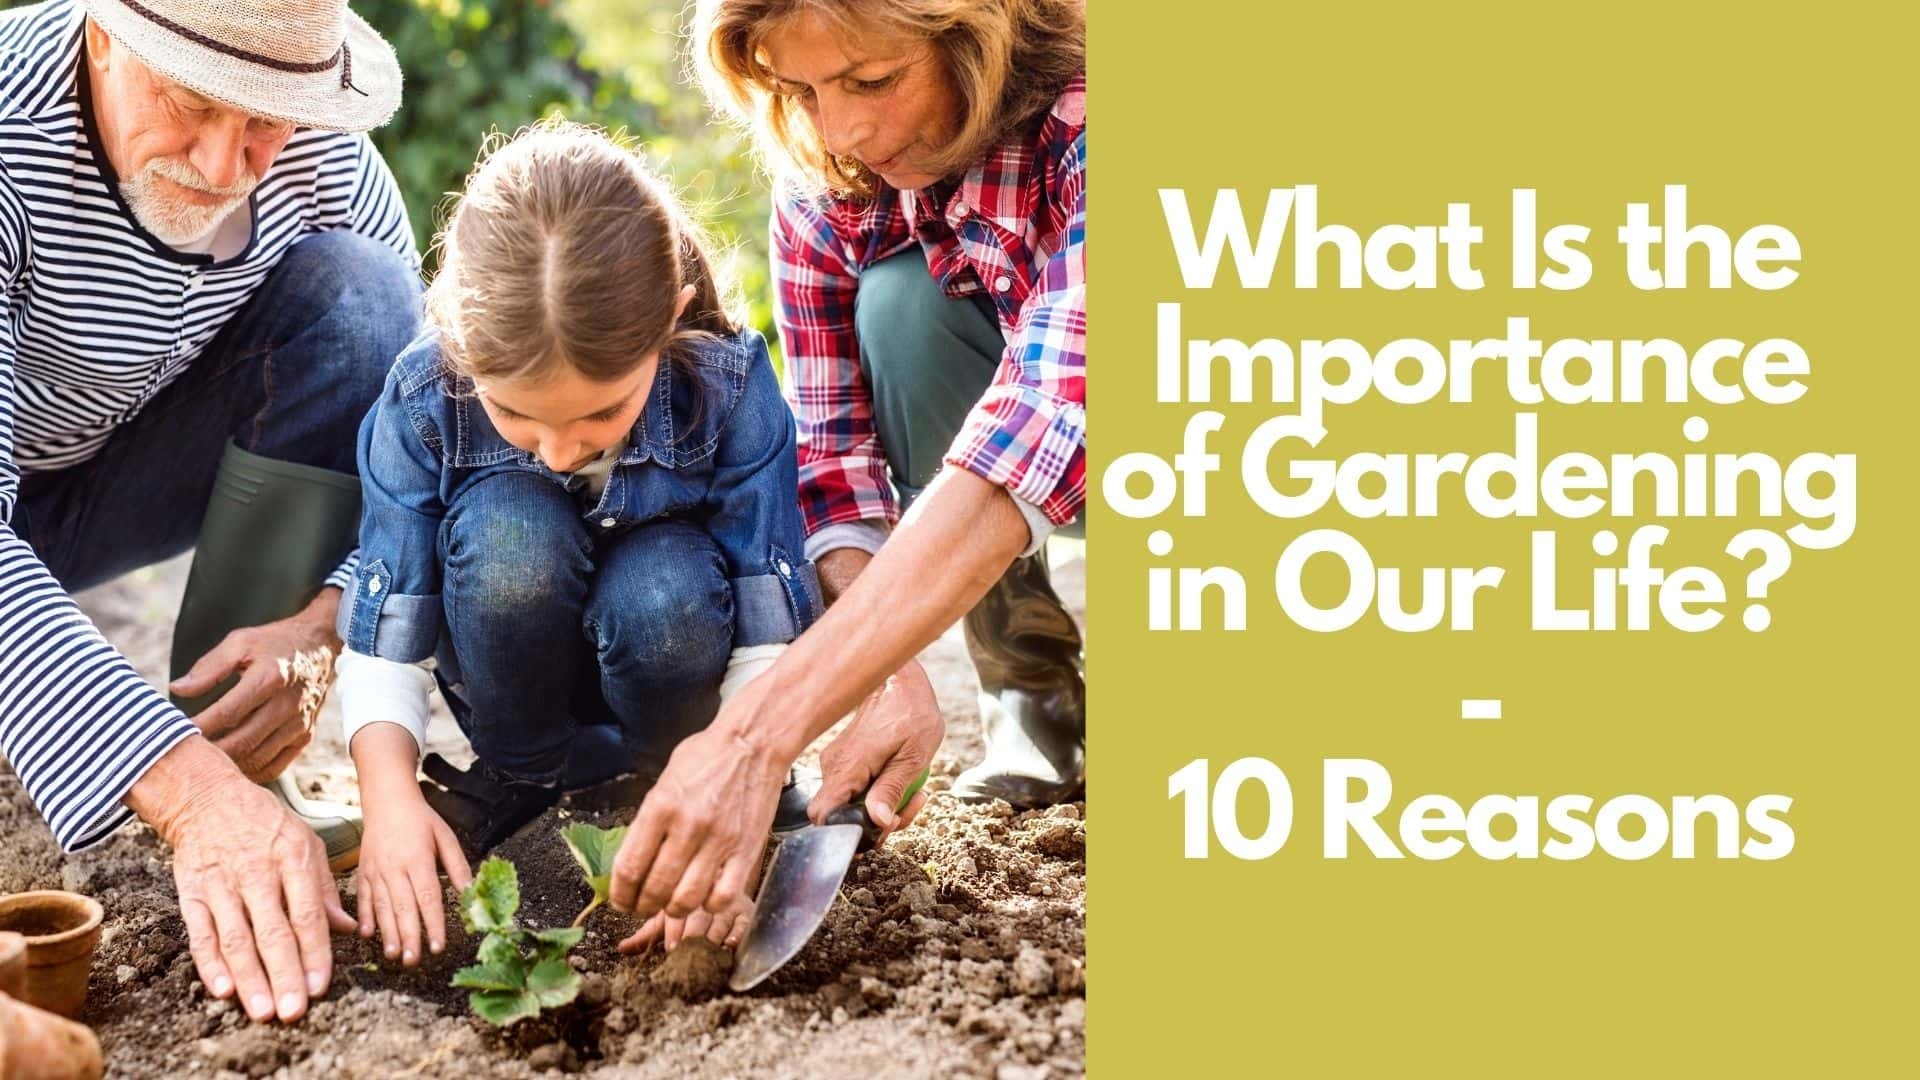 What Is the Importance of Gardening in Our Life 10 Reasons